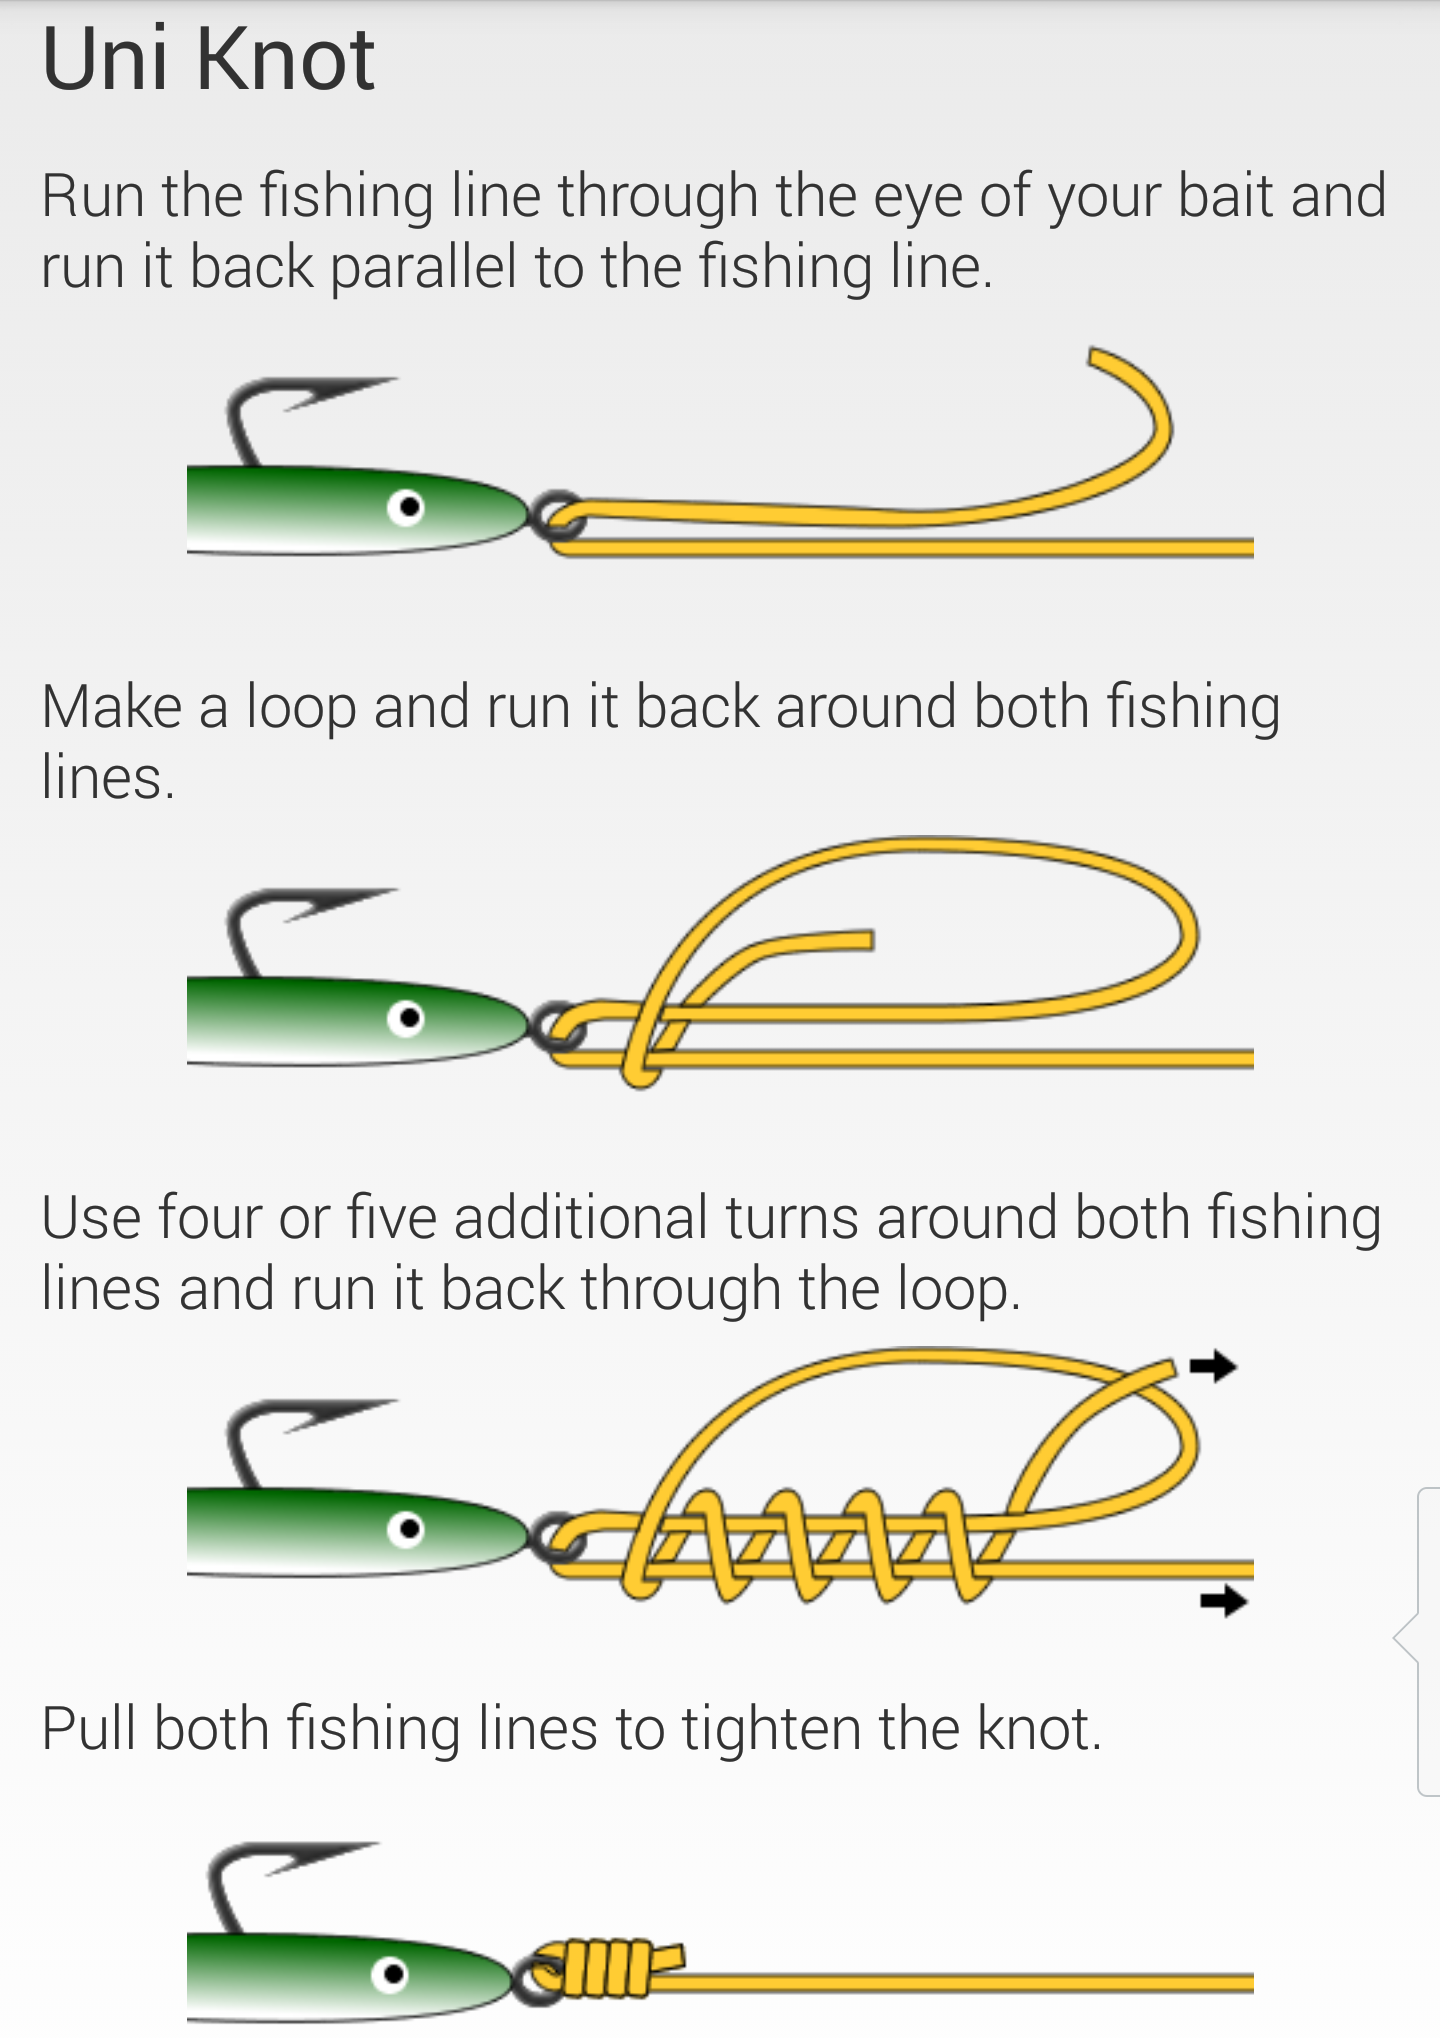 Fishing knots cartersflcharters for The fishing line